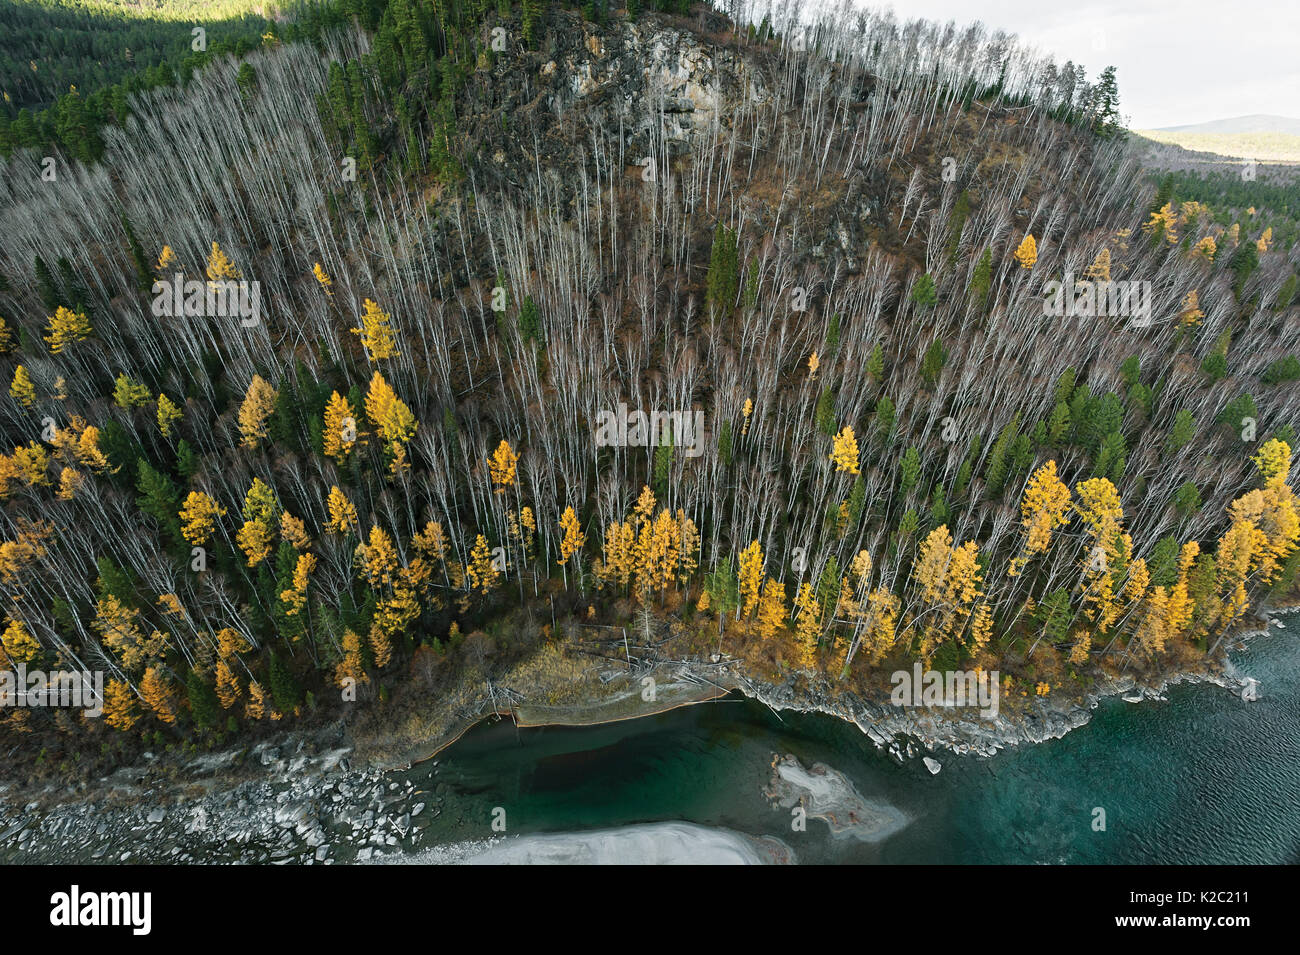 Aerial view of the Ketoy river, Siberia, Russisa,  October 2010. - Stock Image